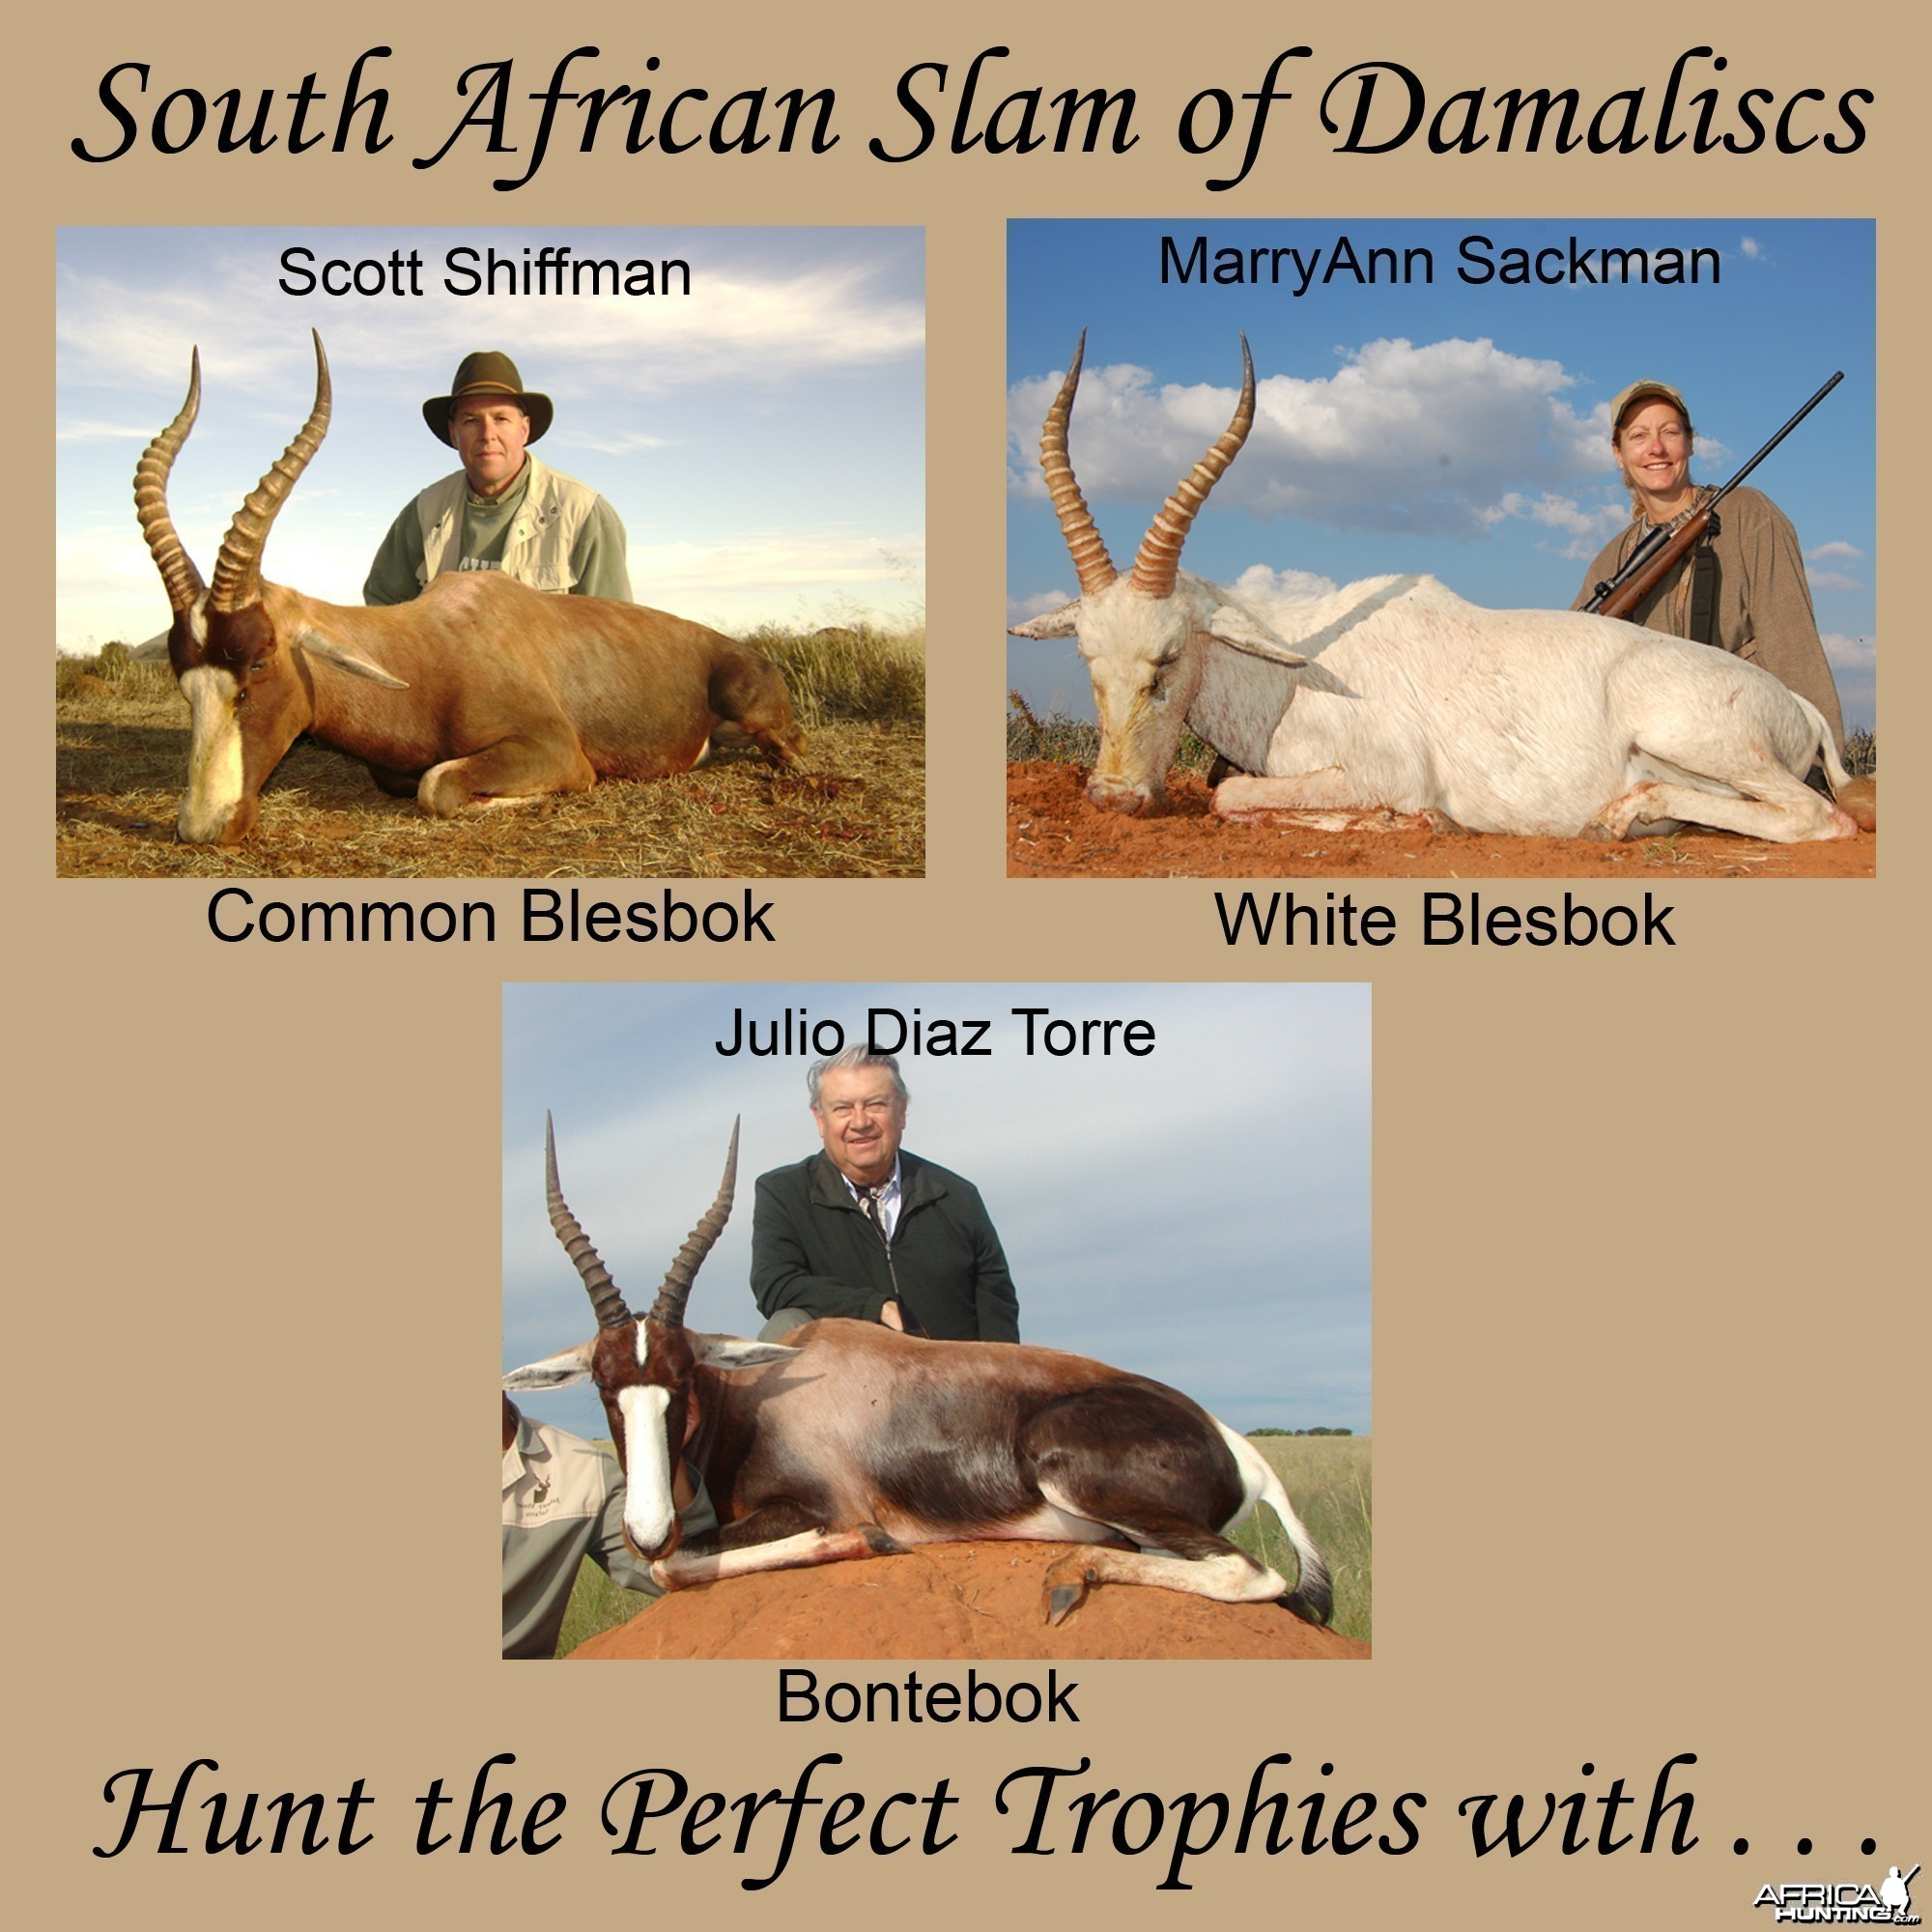 South African Slam of Damaliscs